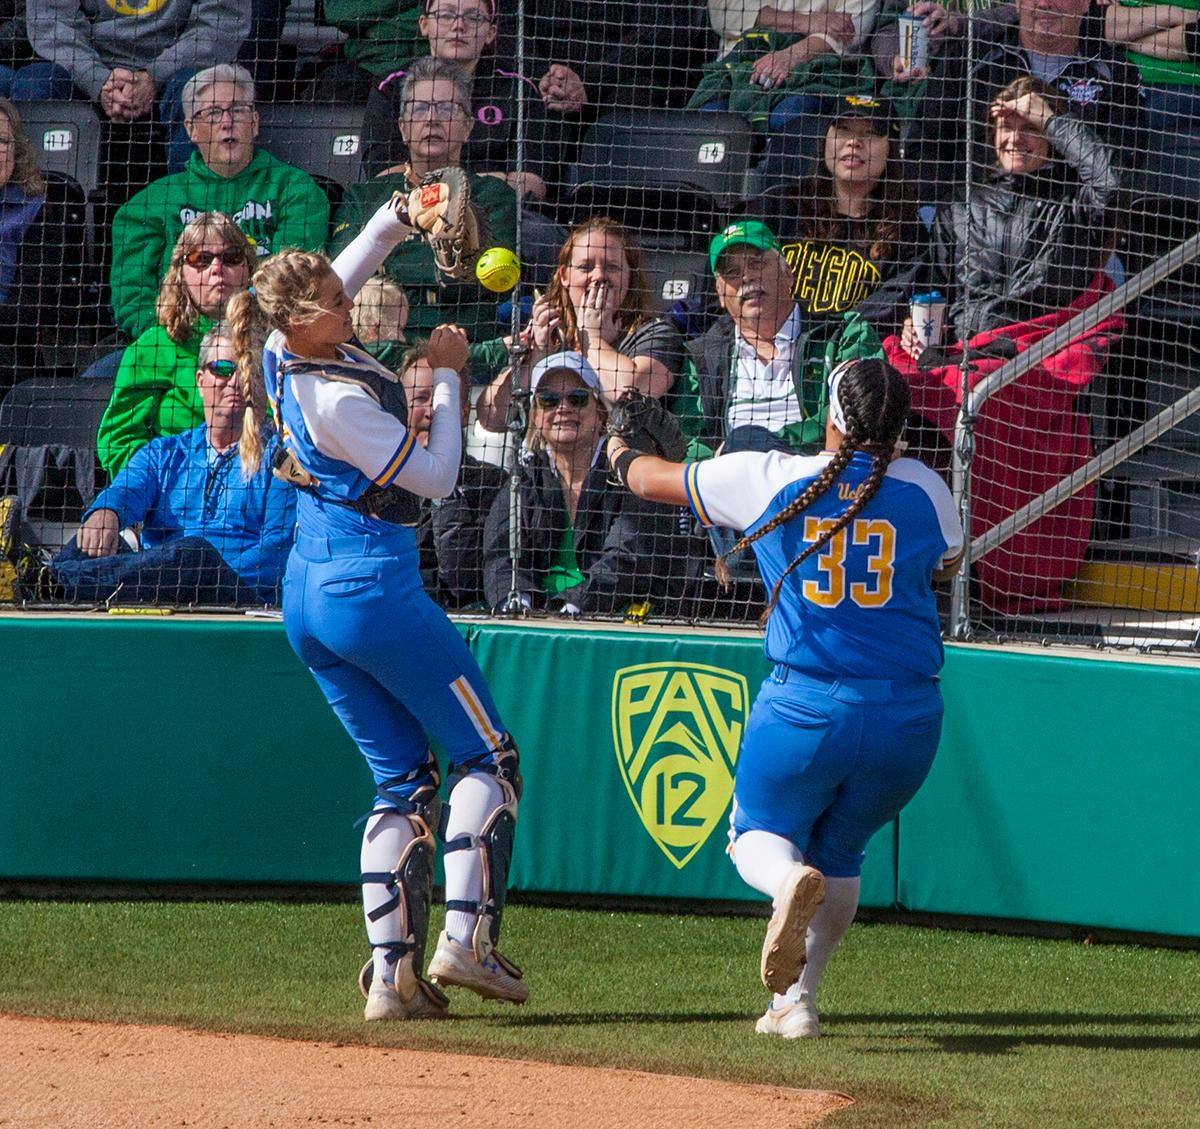 The UCLA Bruins third baseman Brianna Tautalafua (#33) and catcher Paige Halstead (#25) attempt to catch a foul ball against the Ducks. The University of Oregon Ducks defeated the UCLA Bruins 3-0 in the final game of a three-game series Sunday afternoon at Jane Sanders Stadium. Shannon Rhodes hit a walk off three-run homer in the bottom of the 7th inning to win the game. The Ducks improved to 25-5 overall and 2-1 in Pac-12 play. Photo by William Tierney, Oregon News Lab